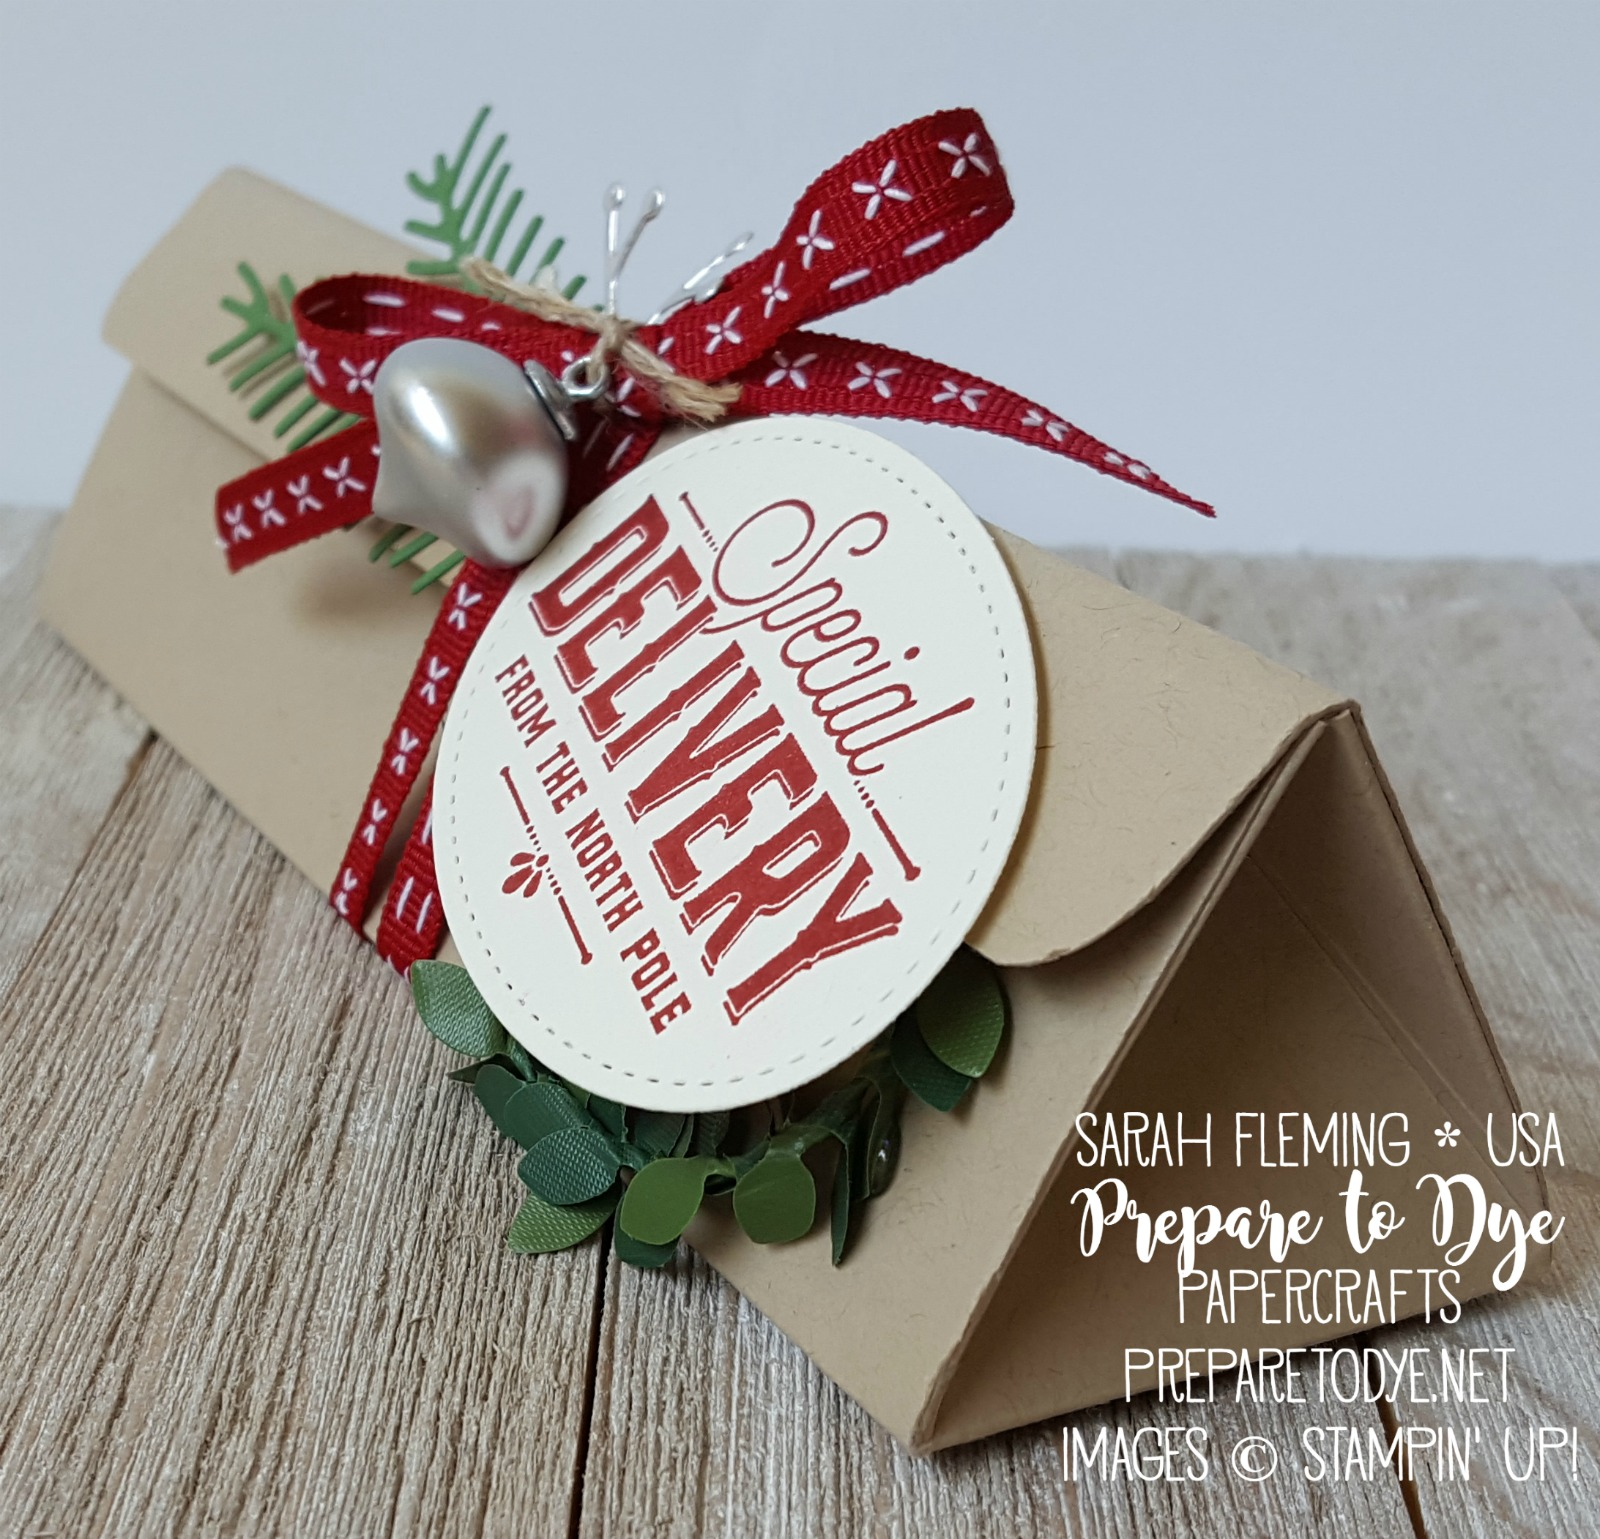 Stampin' Up! gift packaging - handmade triangle box for Hershey's nuggets - Merry Little Labels, Stitched Shapes framelits, Pretty Pines thinlits, boxwood wreaths, Mini Ornaments - Sarah Fleming - Prepare to Dye Papercrafts